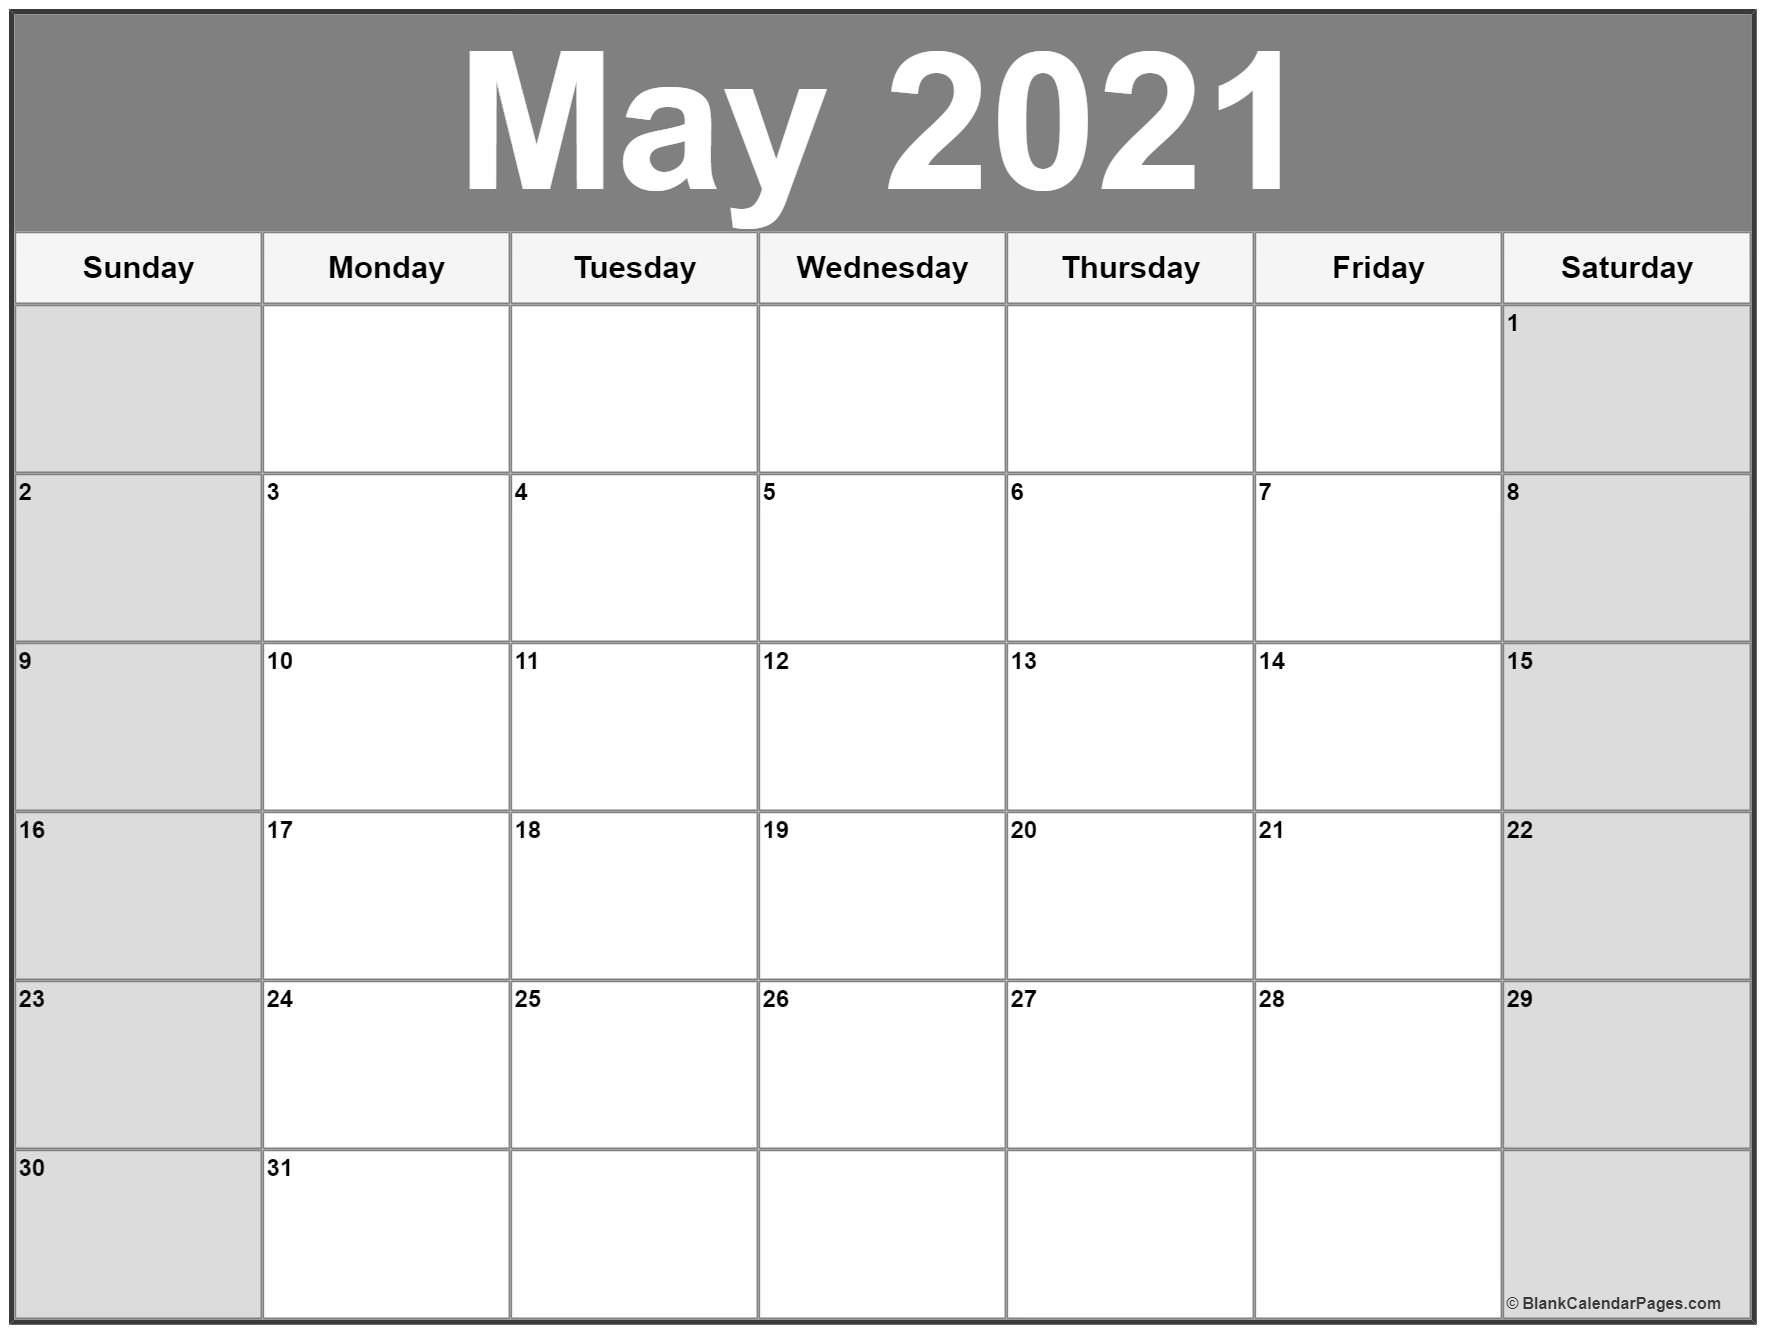 May 2021 Calendar | Free Printable Monthly Calendars Blank 30 Day Calendar Starting May 24